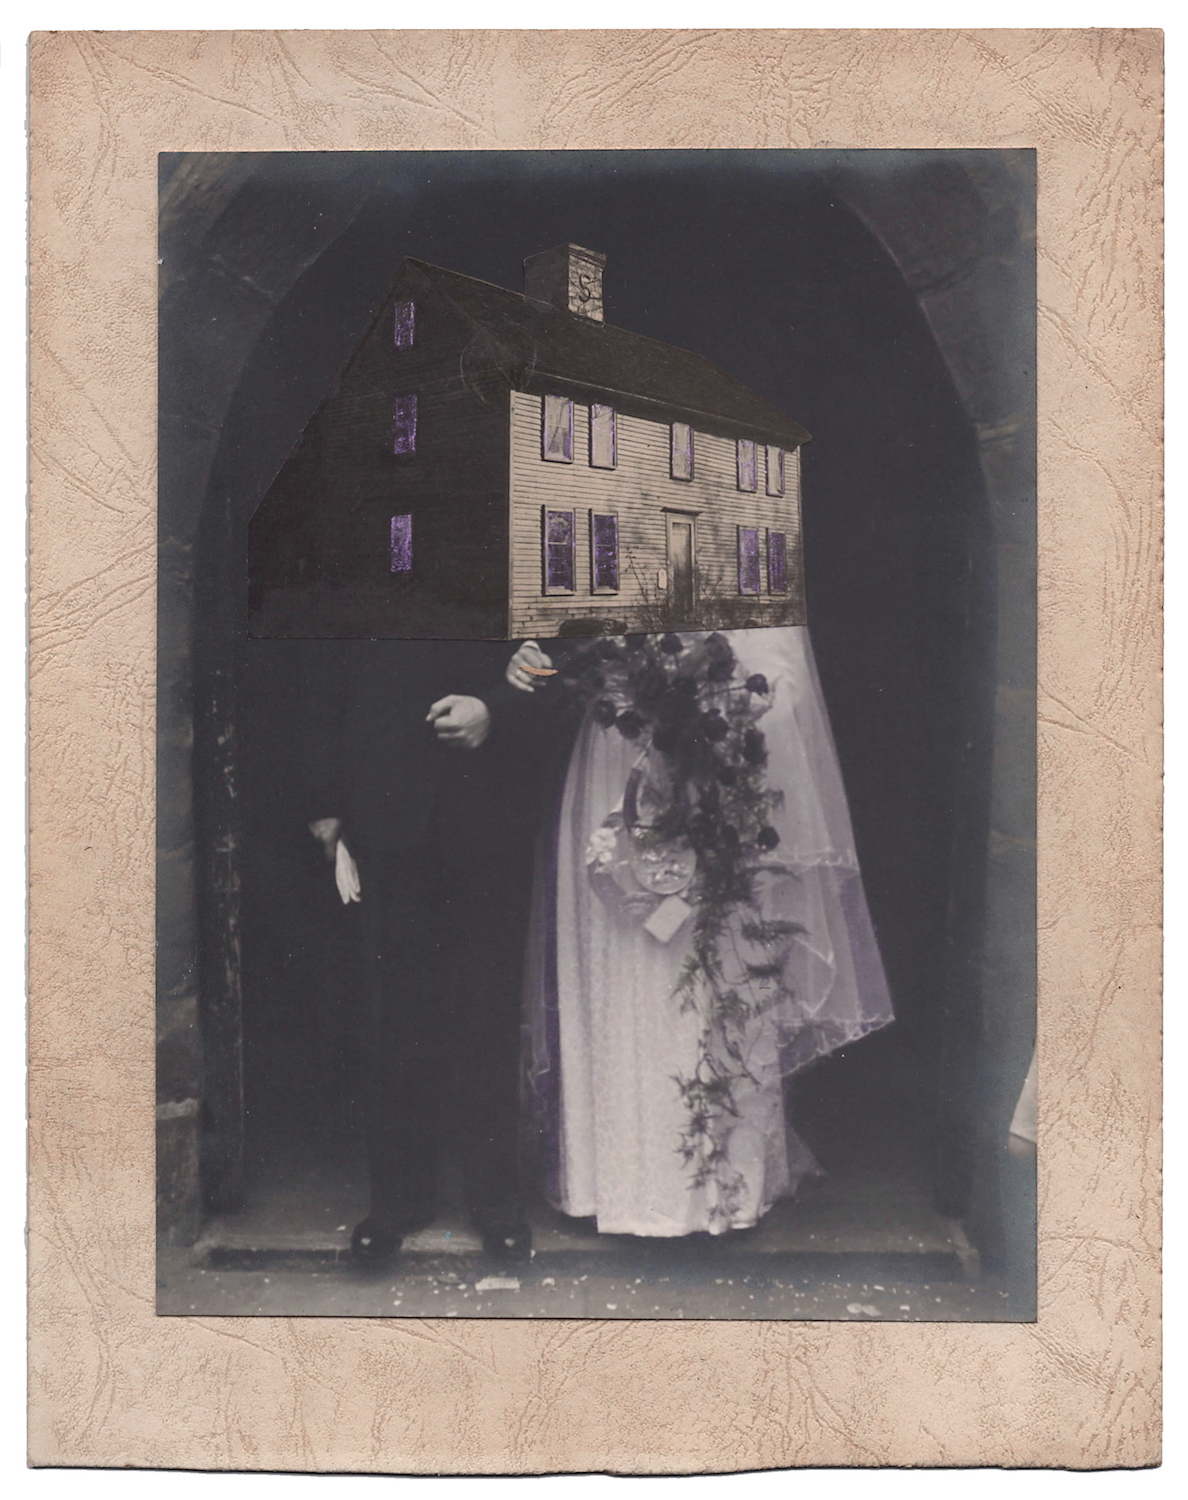 Wedding 10, 2016,Found Photographs, Collage, & Acrylic, 10 x 8 inches